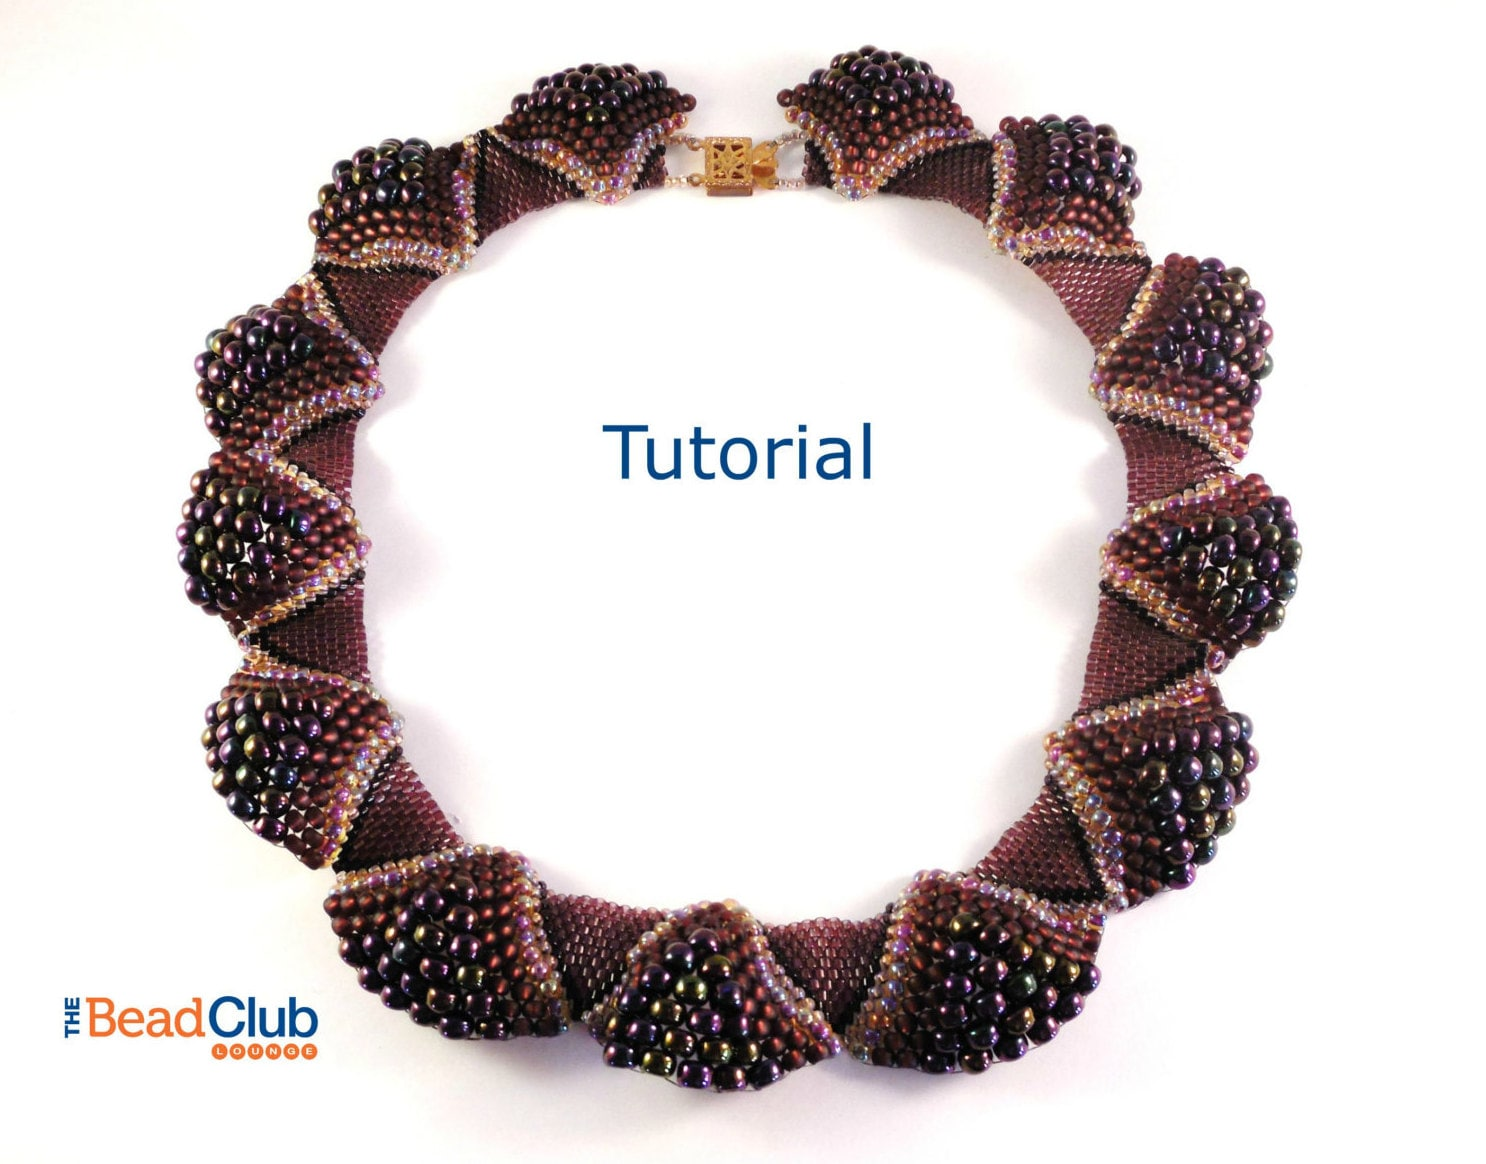 tutorial gilded product patterns necklace hugerect peyote simple diagonal pattern leaf bead beading stitch